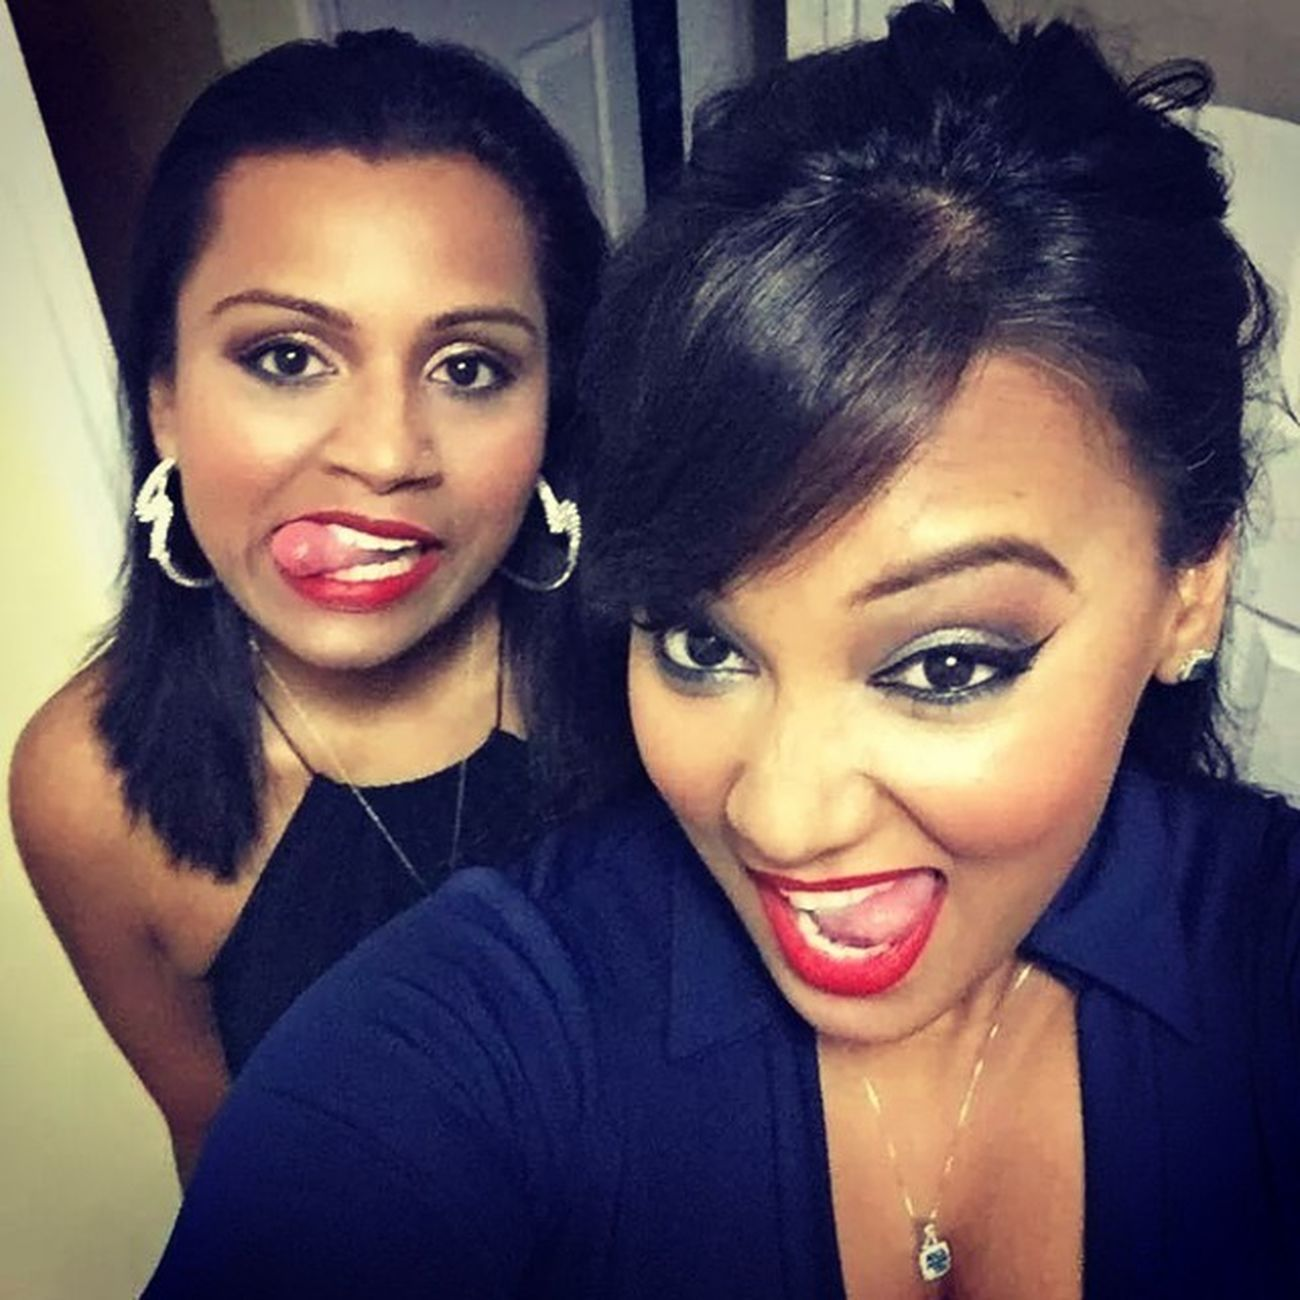 """@ms._new_york said """"let's take a slefie!"""" Selfietime Theendresult Mysister Fromanothermister poseoff tongues picturetime makeuponpoint preclub beforethemadnessbegan ZenLounge Queens Nigels21stBirthdayFete"""